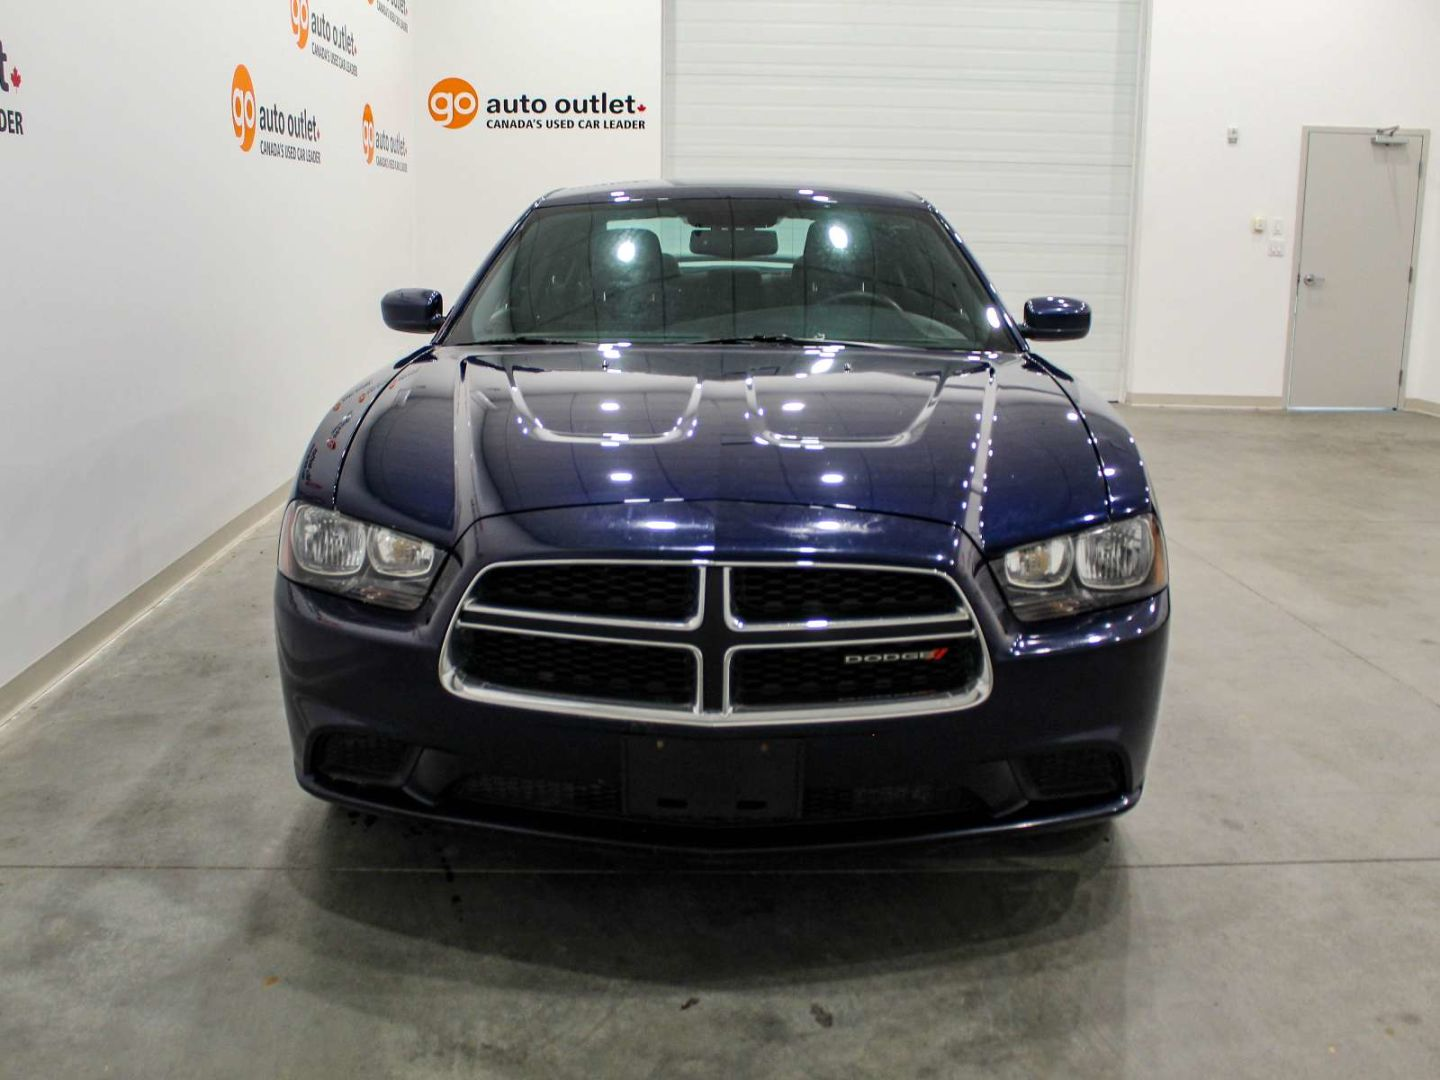 2013 Dodge Charger SE for sale in Edmonton, Alberta